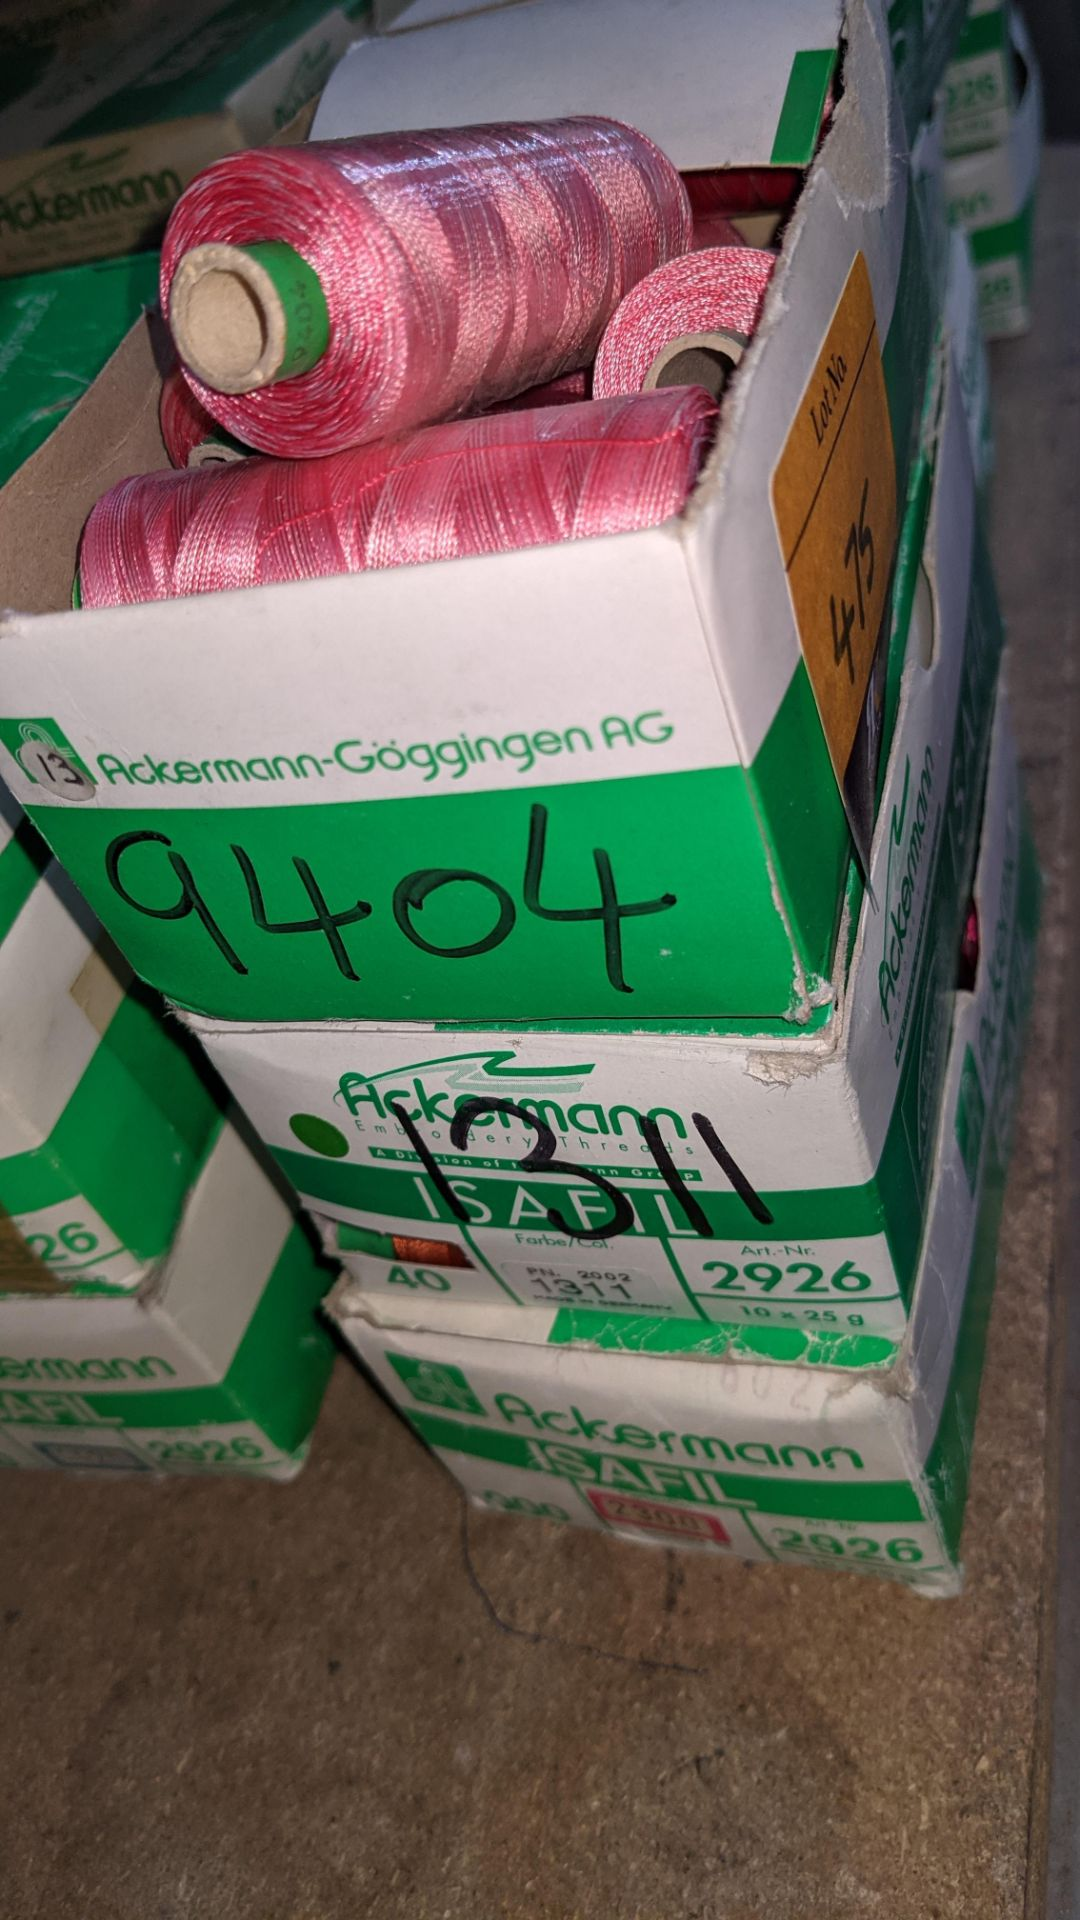 15 boxes of Ackermann Isafil viscose/rayon embroidery thread - Image 4 of 8